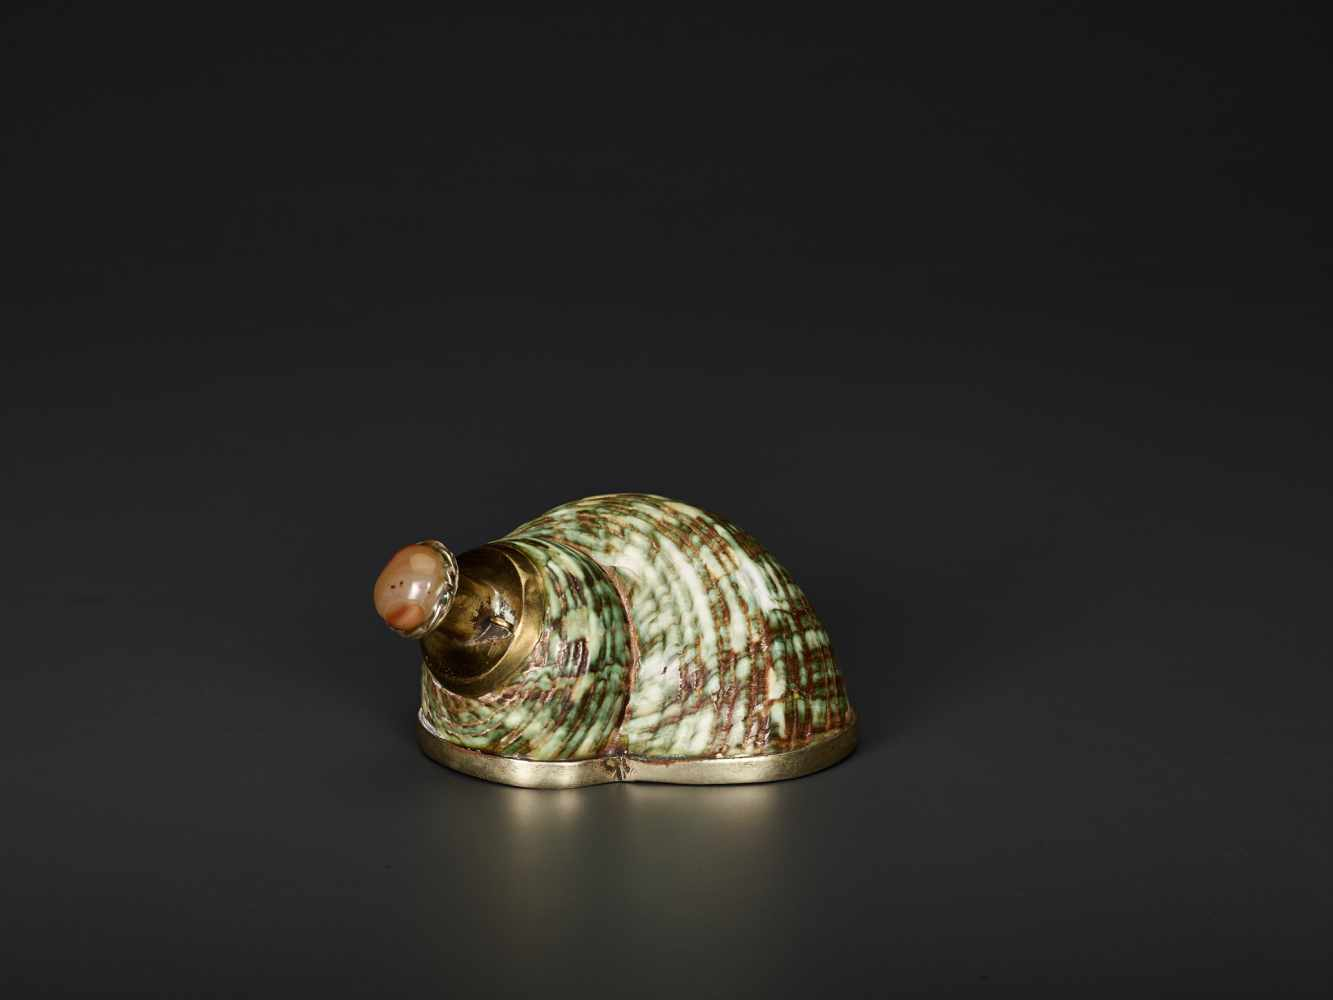 TURBO CONCH PERFUME CONTAINER WITH AGATE STOPPER, 19th CENTURYTurbo conch, silver plate metal and